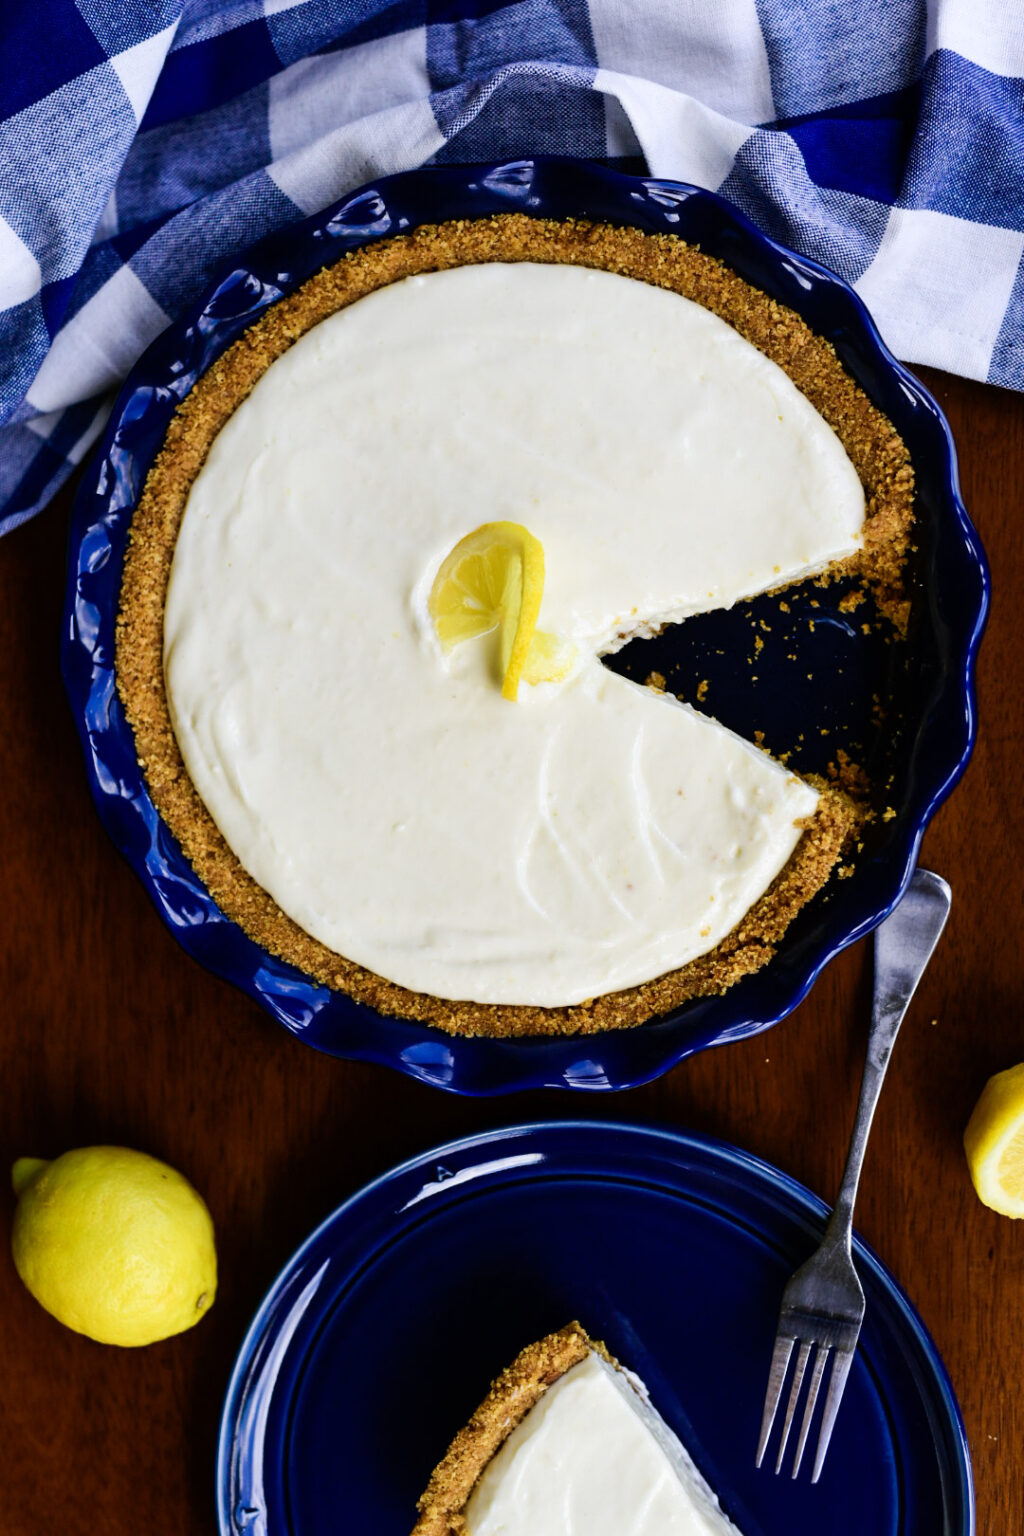 Lemon pie with slice removed